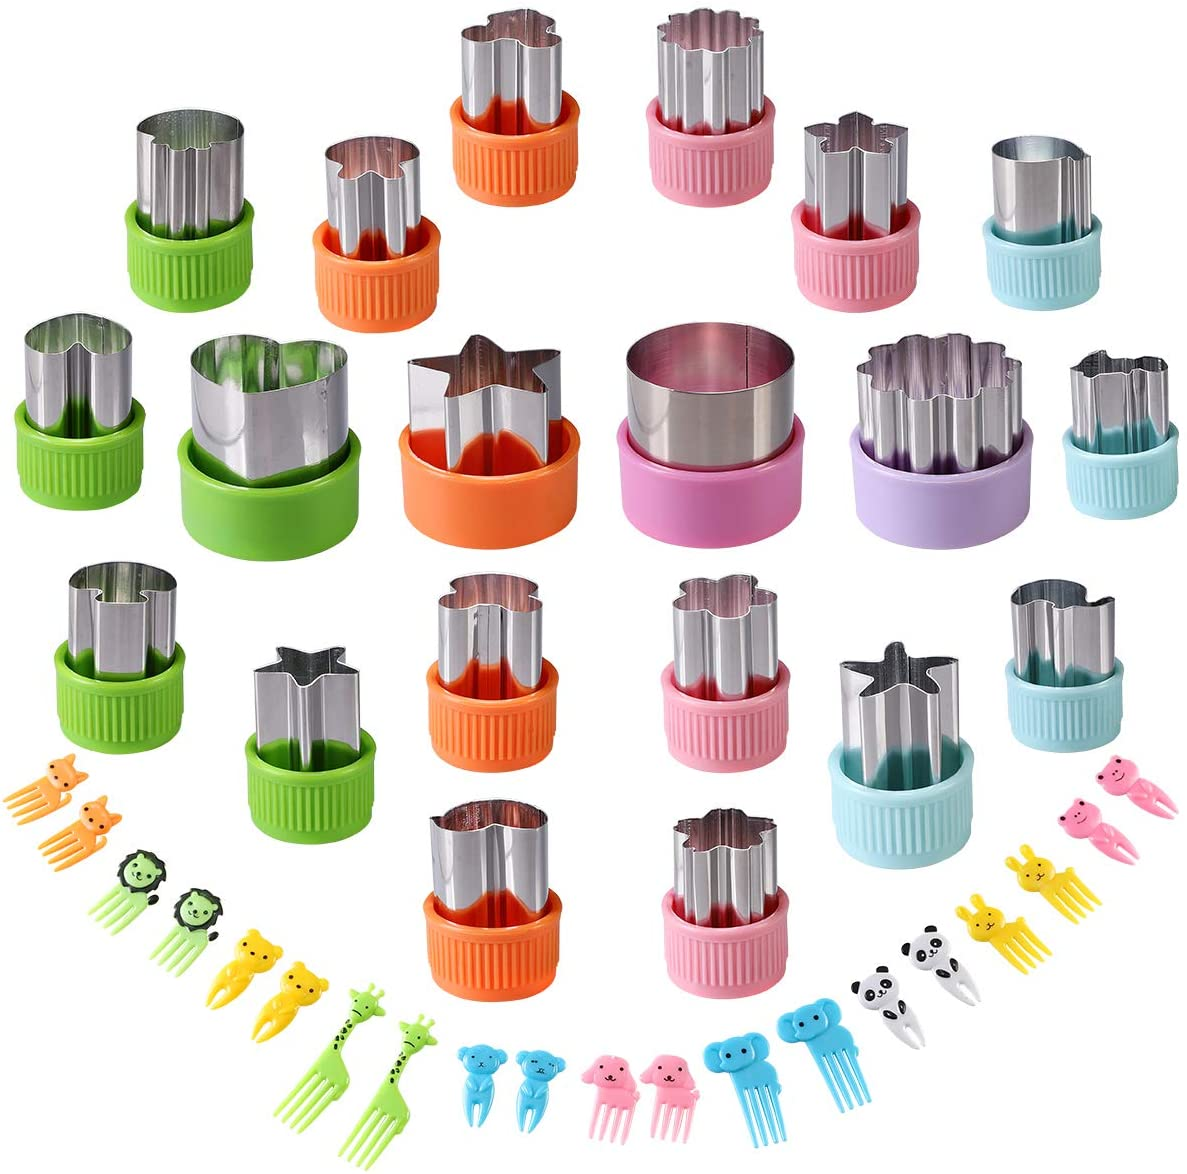 Vegetable Cutters Shapes Set, 20pcs Stainless Steel Mini Cookie Cutters, Vegetable Cutter and Fruit Stamps Mold + 20pcs Cute Cartoon Animals Food Picks and Forks -for Kids Baking and Food Supplement